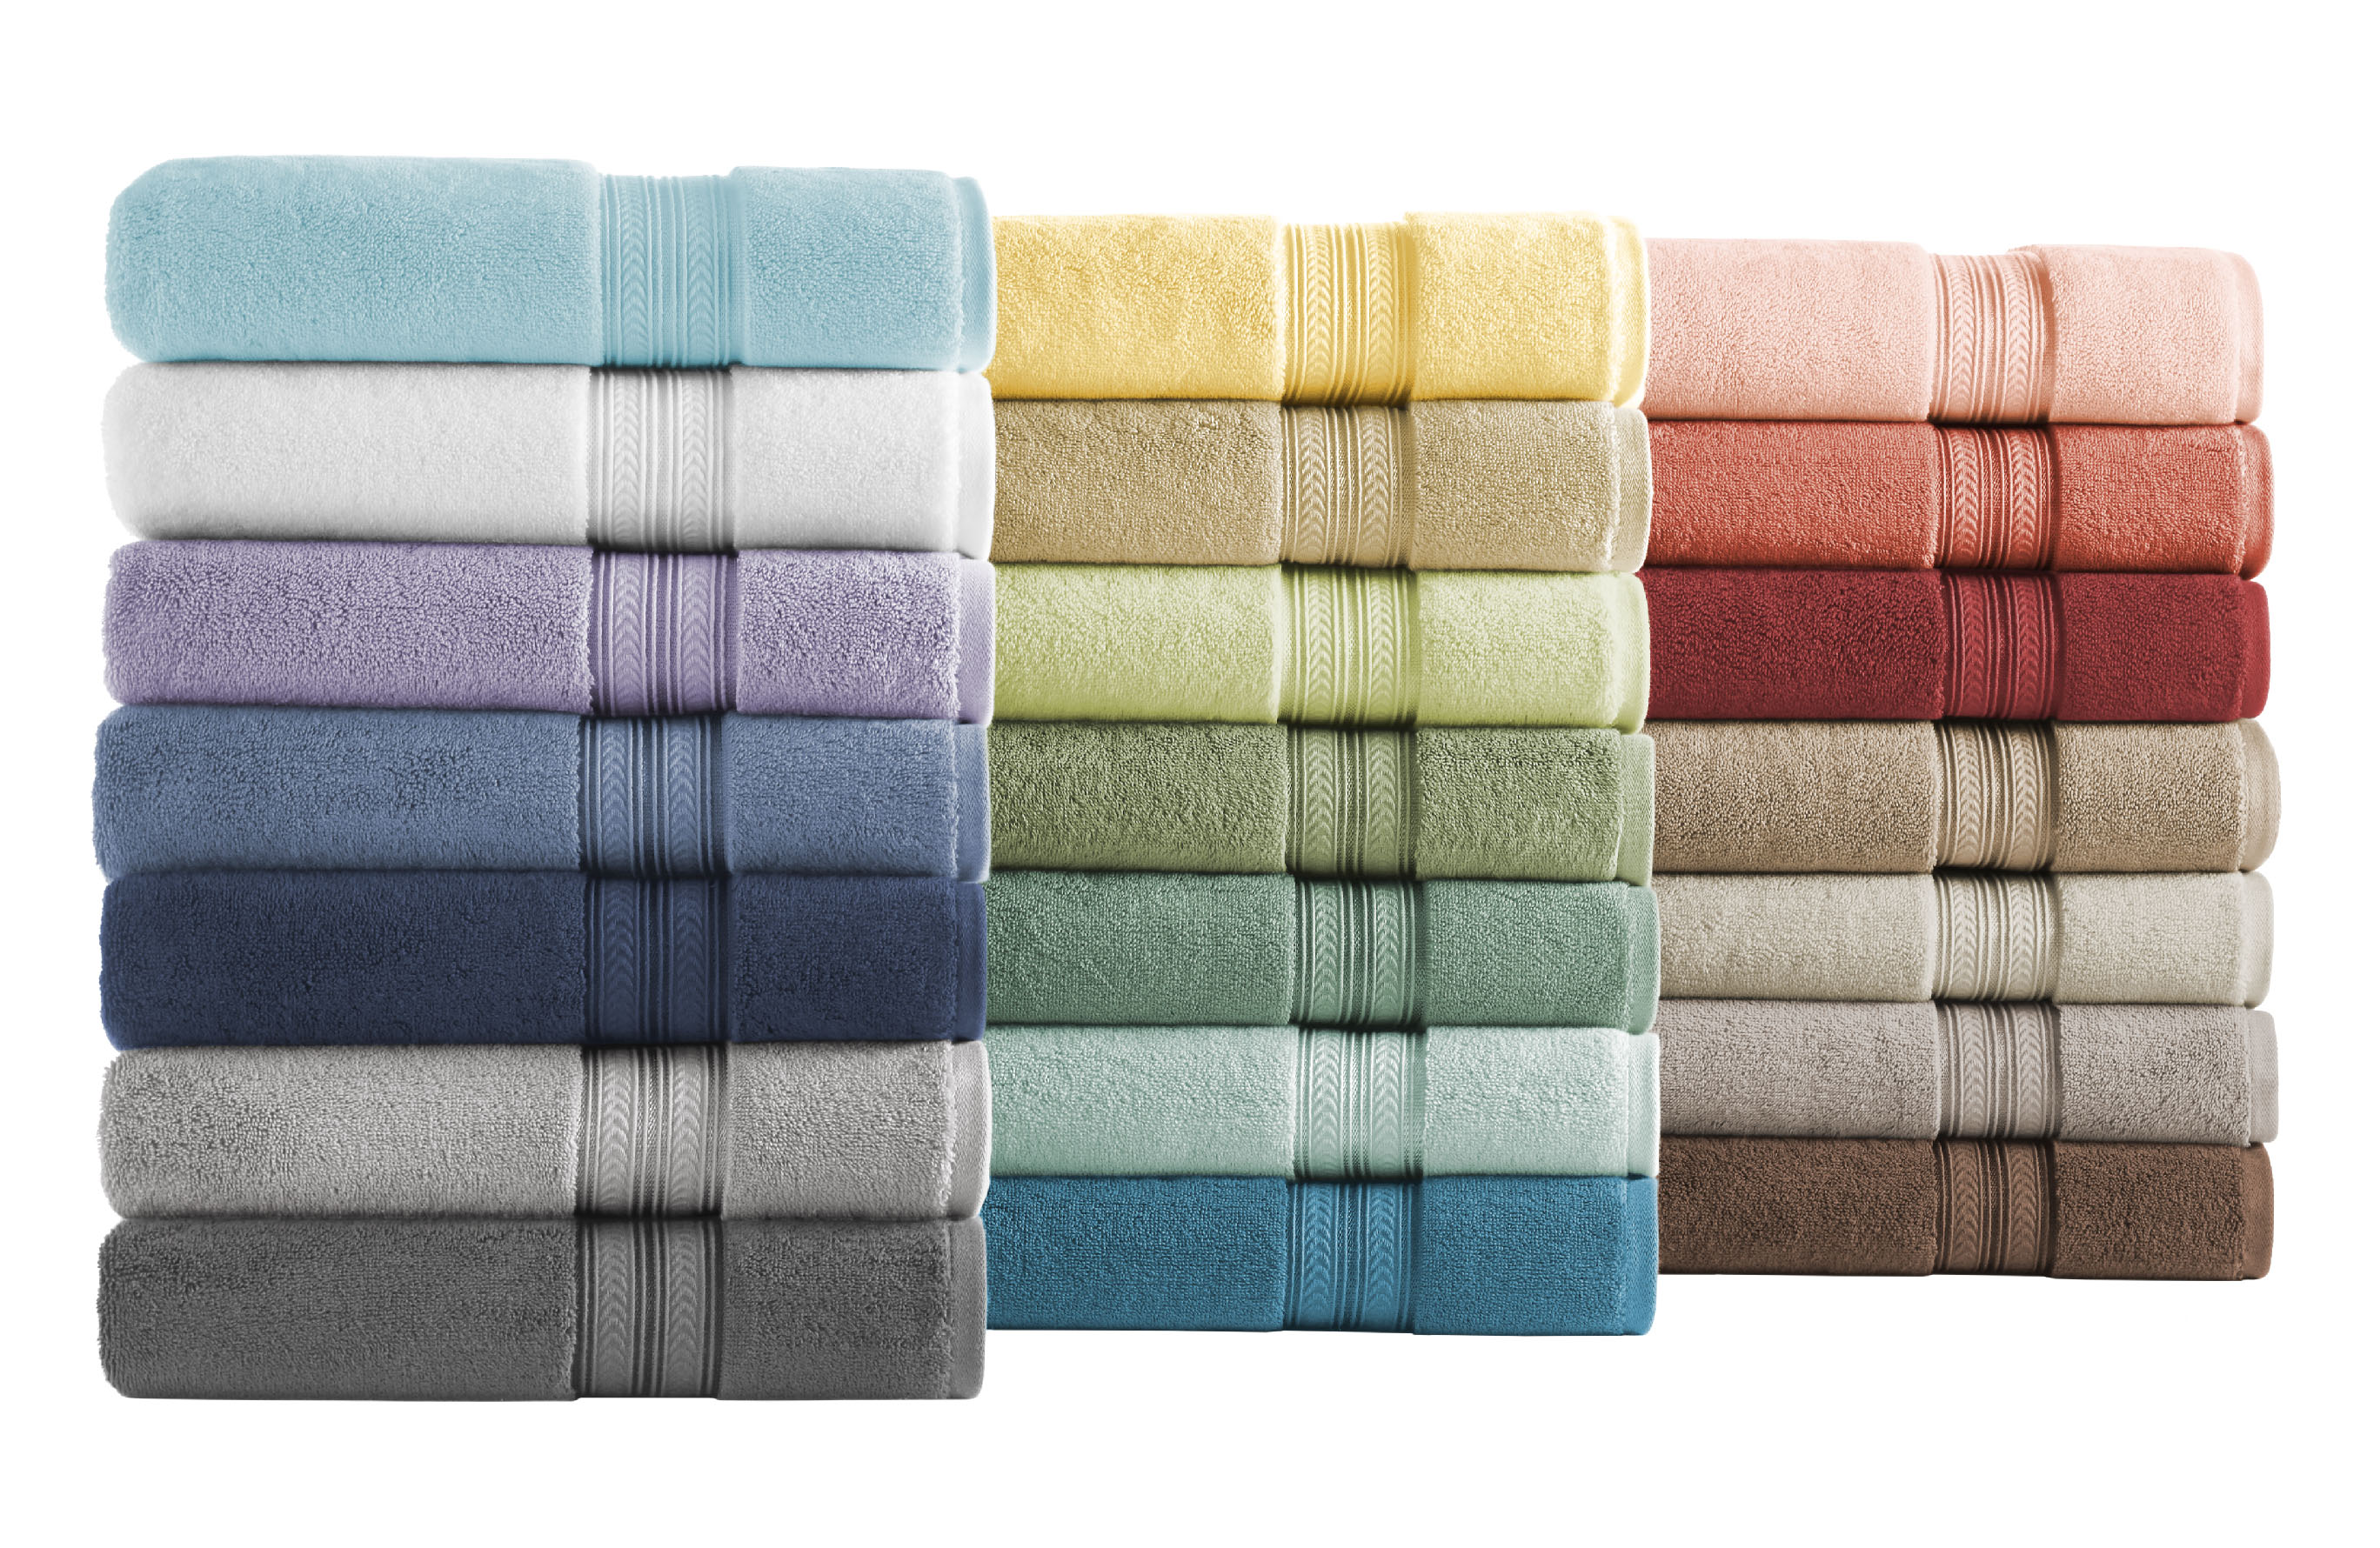 Bath Towel Sets--How to Buy at Clearance Prices